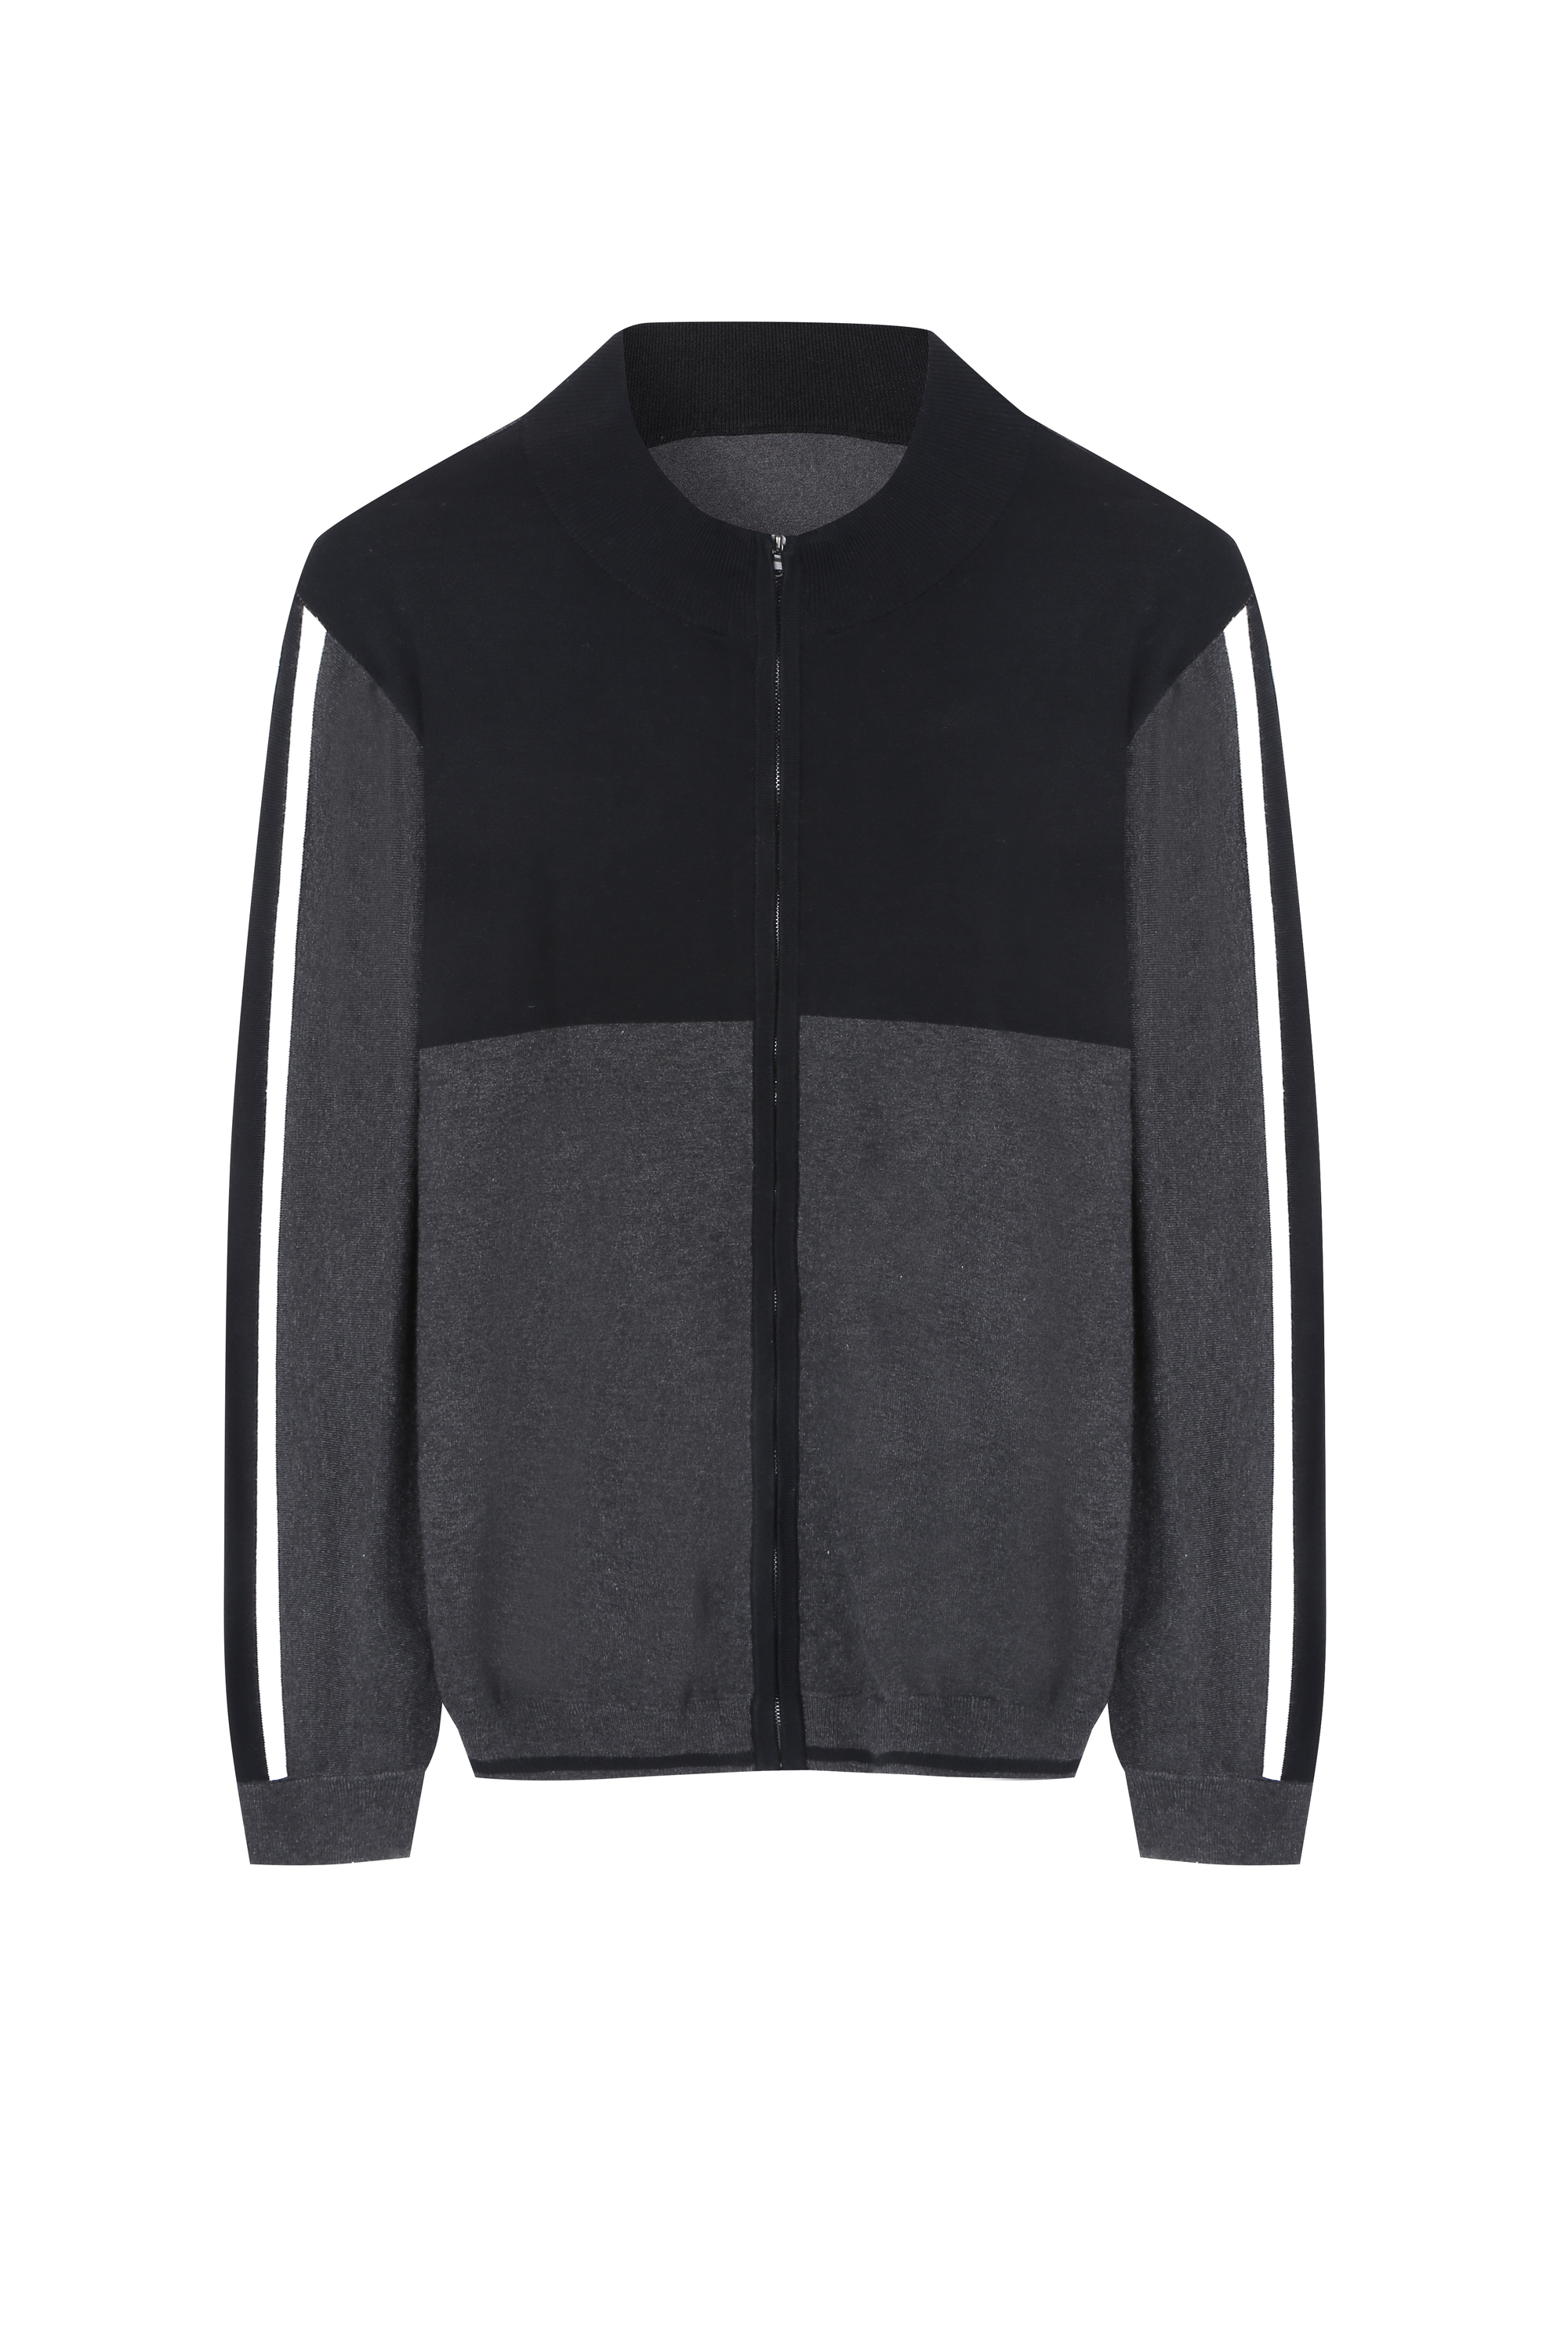 Men's Super Soft full Zip Knitted Cardigan in Sport Style